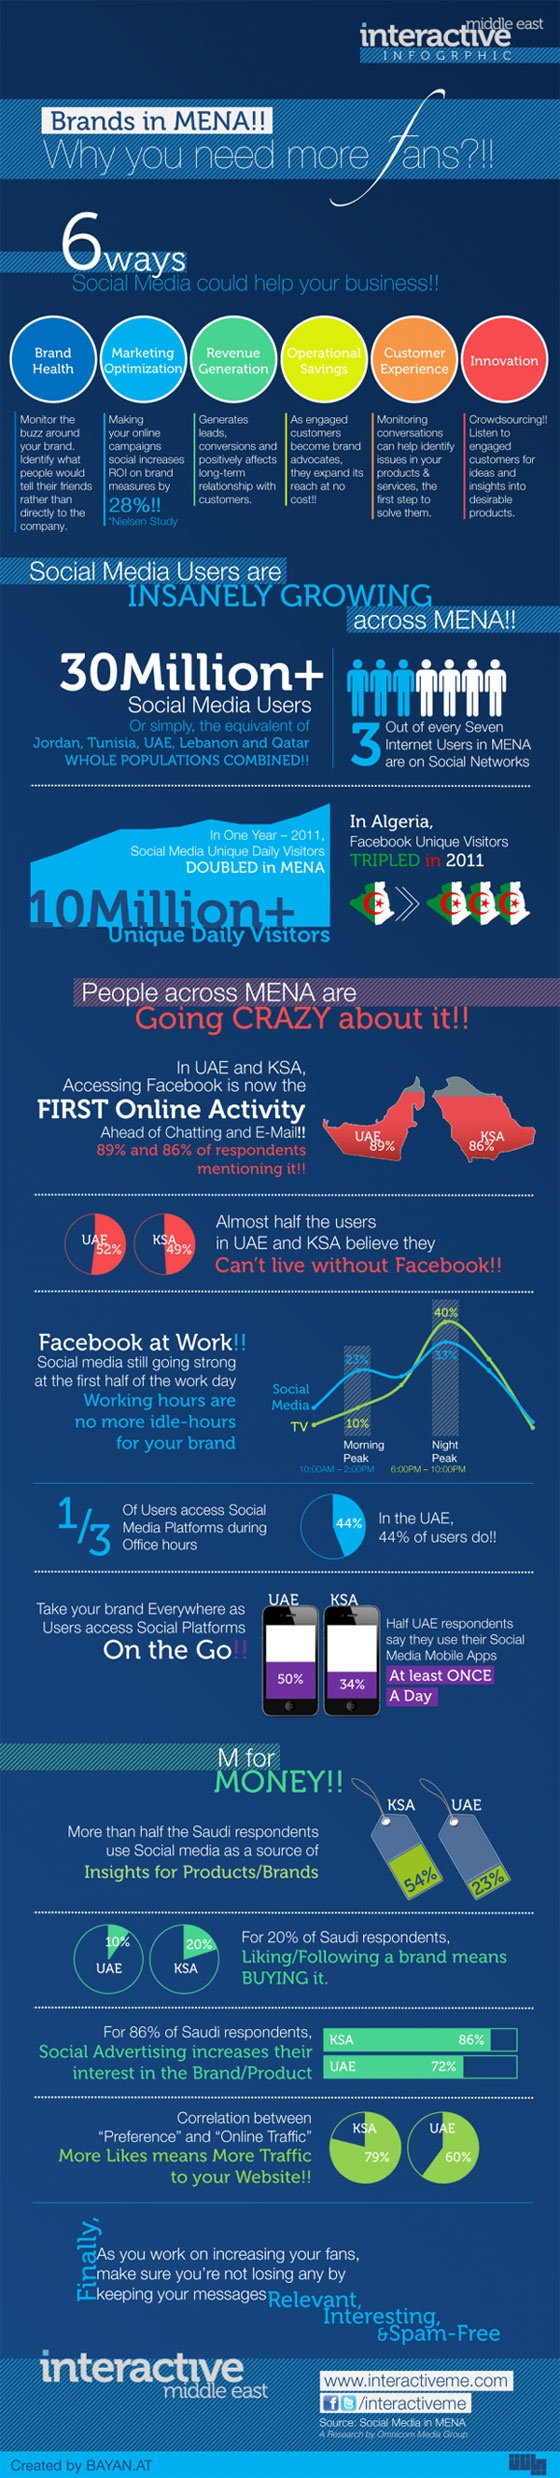 Infographic: Social media usage in #UAE, Saudi Arabia #socialmedia @sanajt